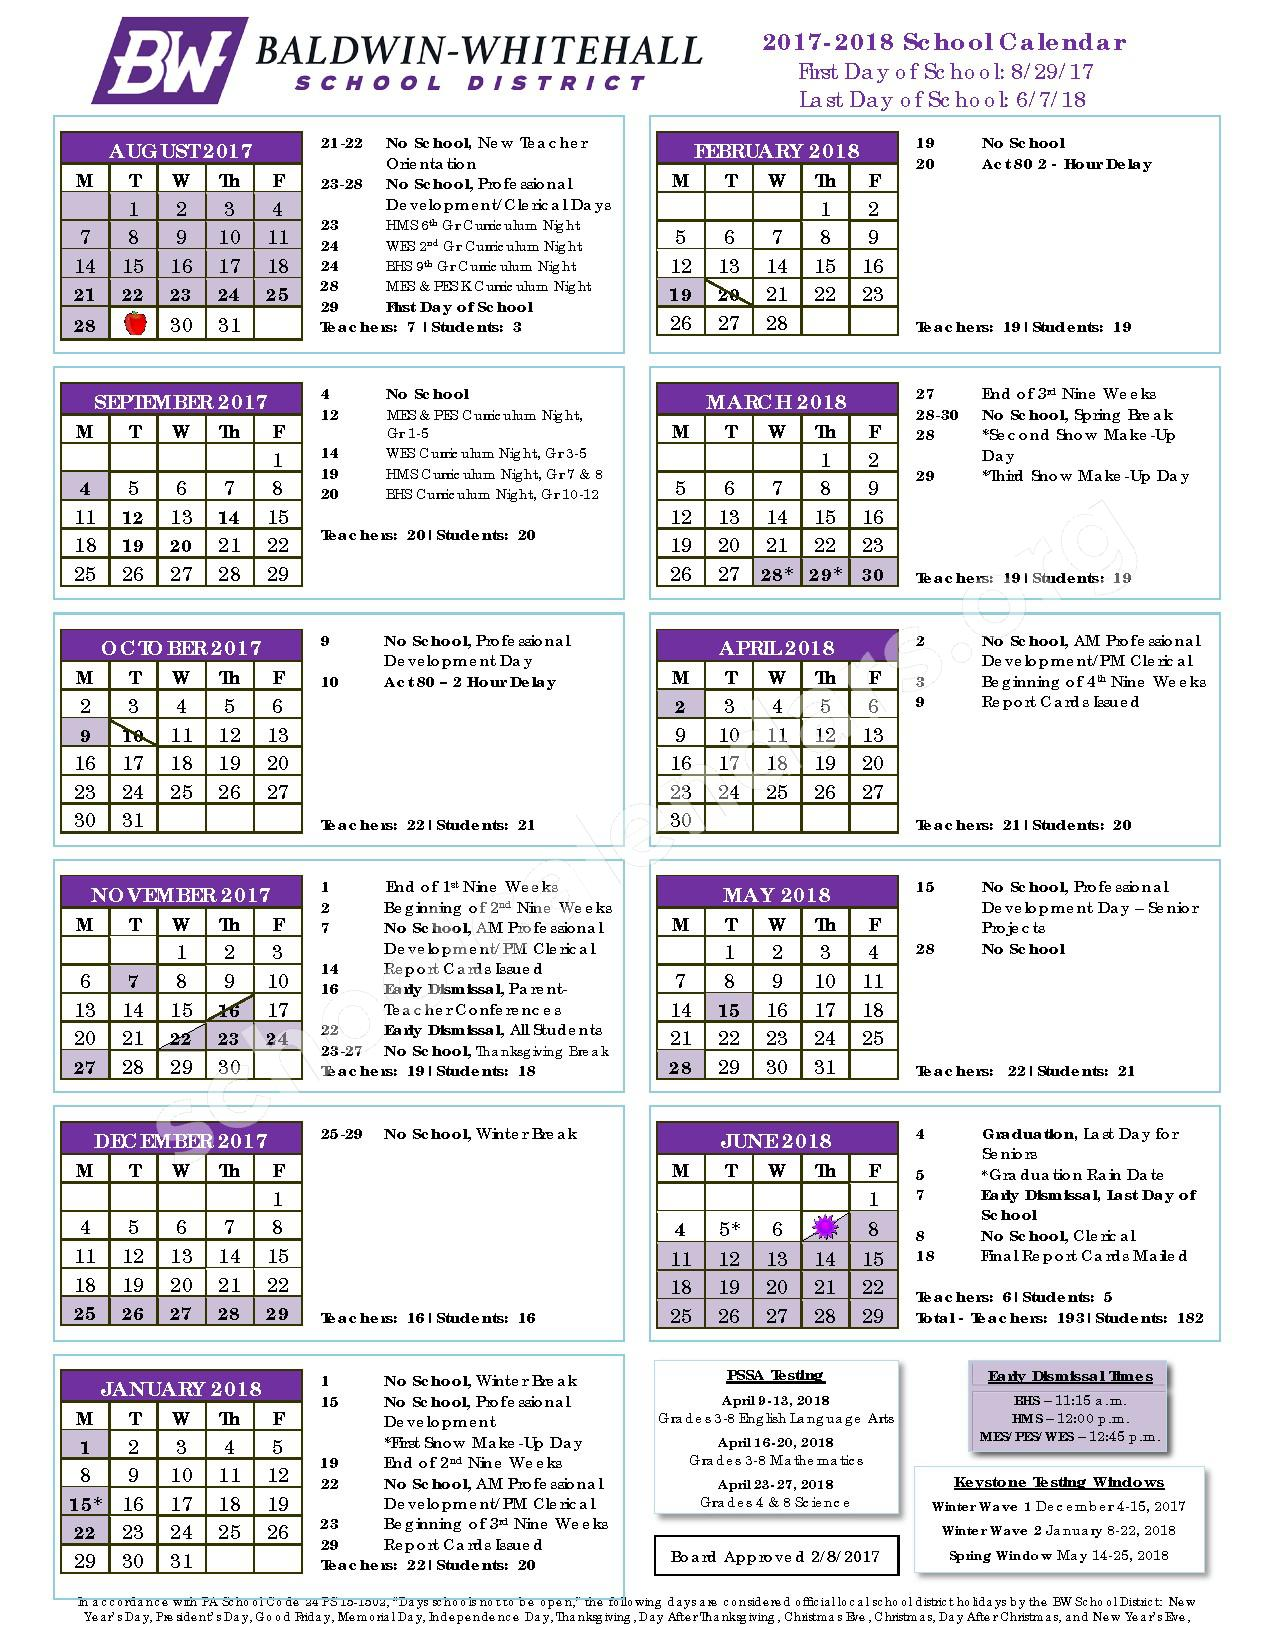 2017 - 2018 District Calendar – McAnnulty Elementary School – page 1